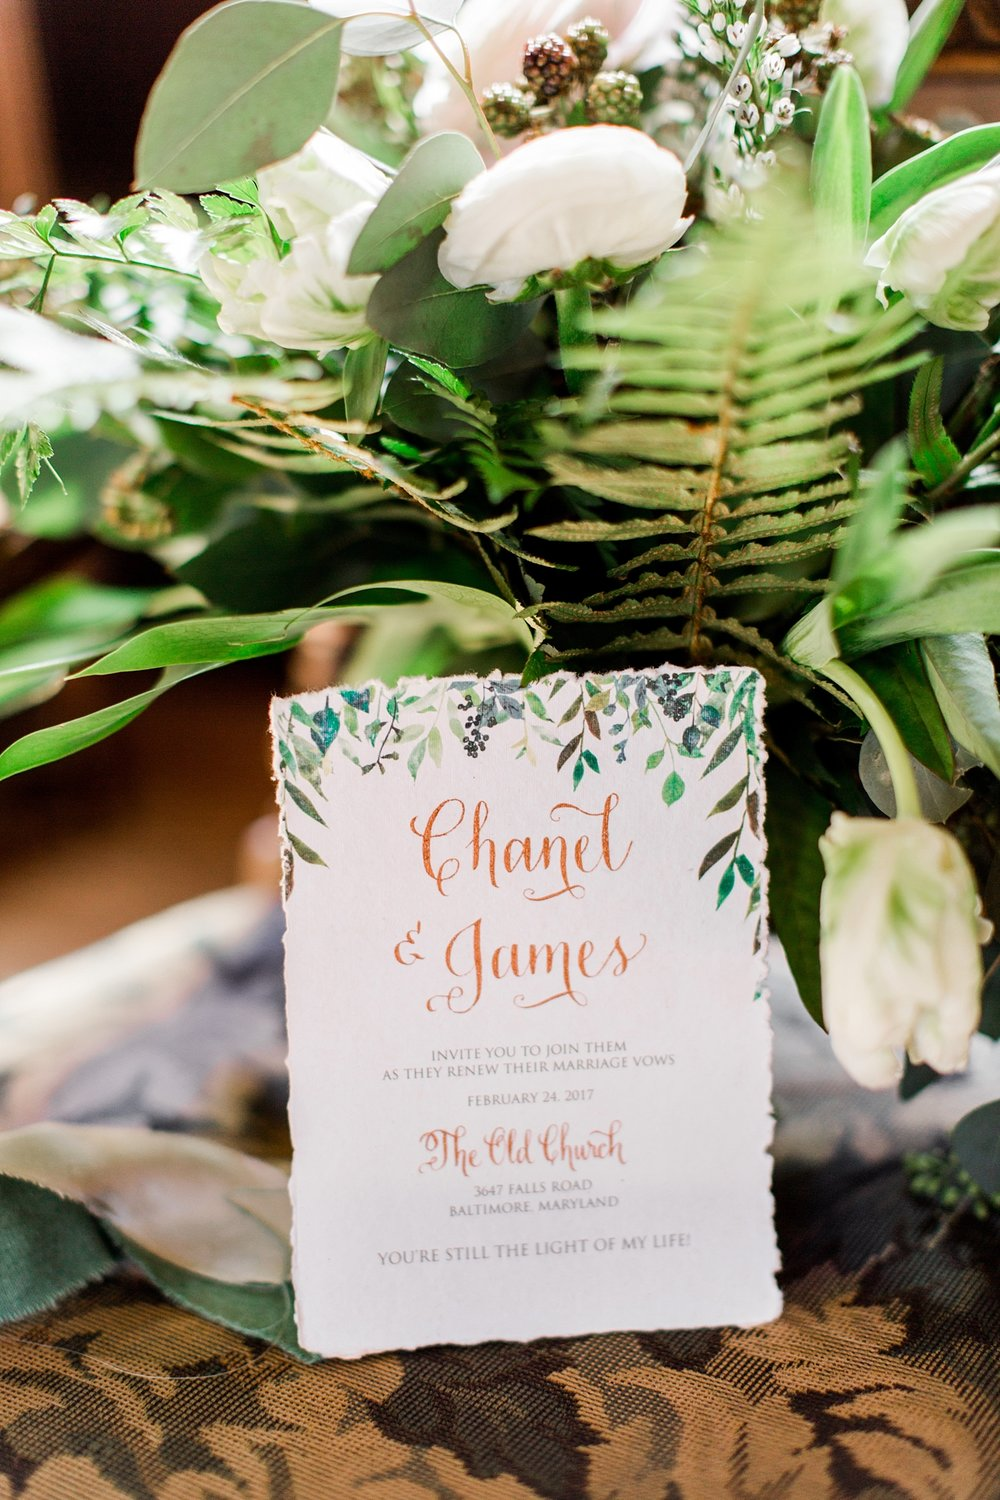 Vow Renewal - February 2017 - Photos by Alicia Wiley